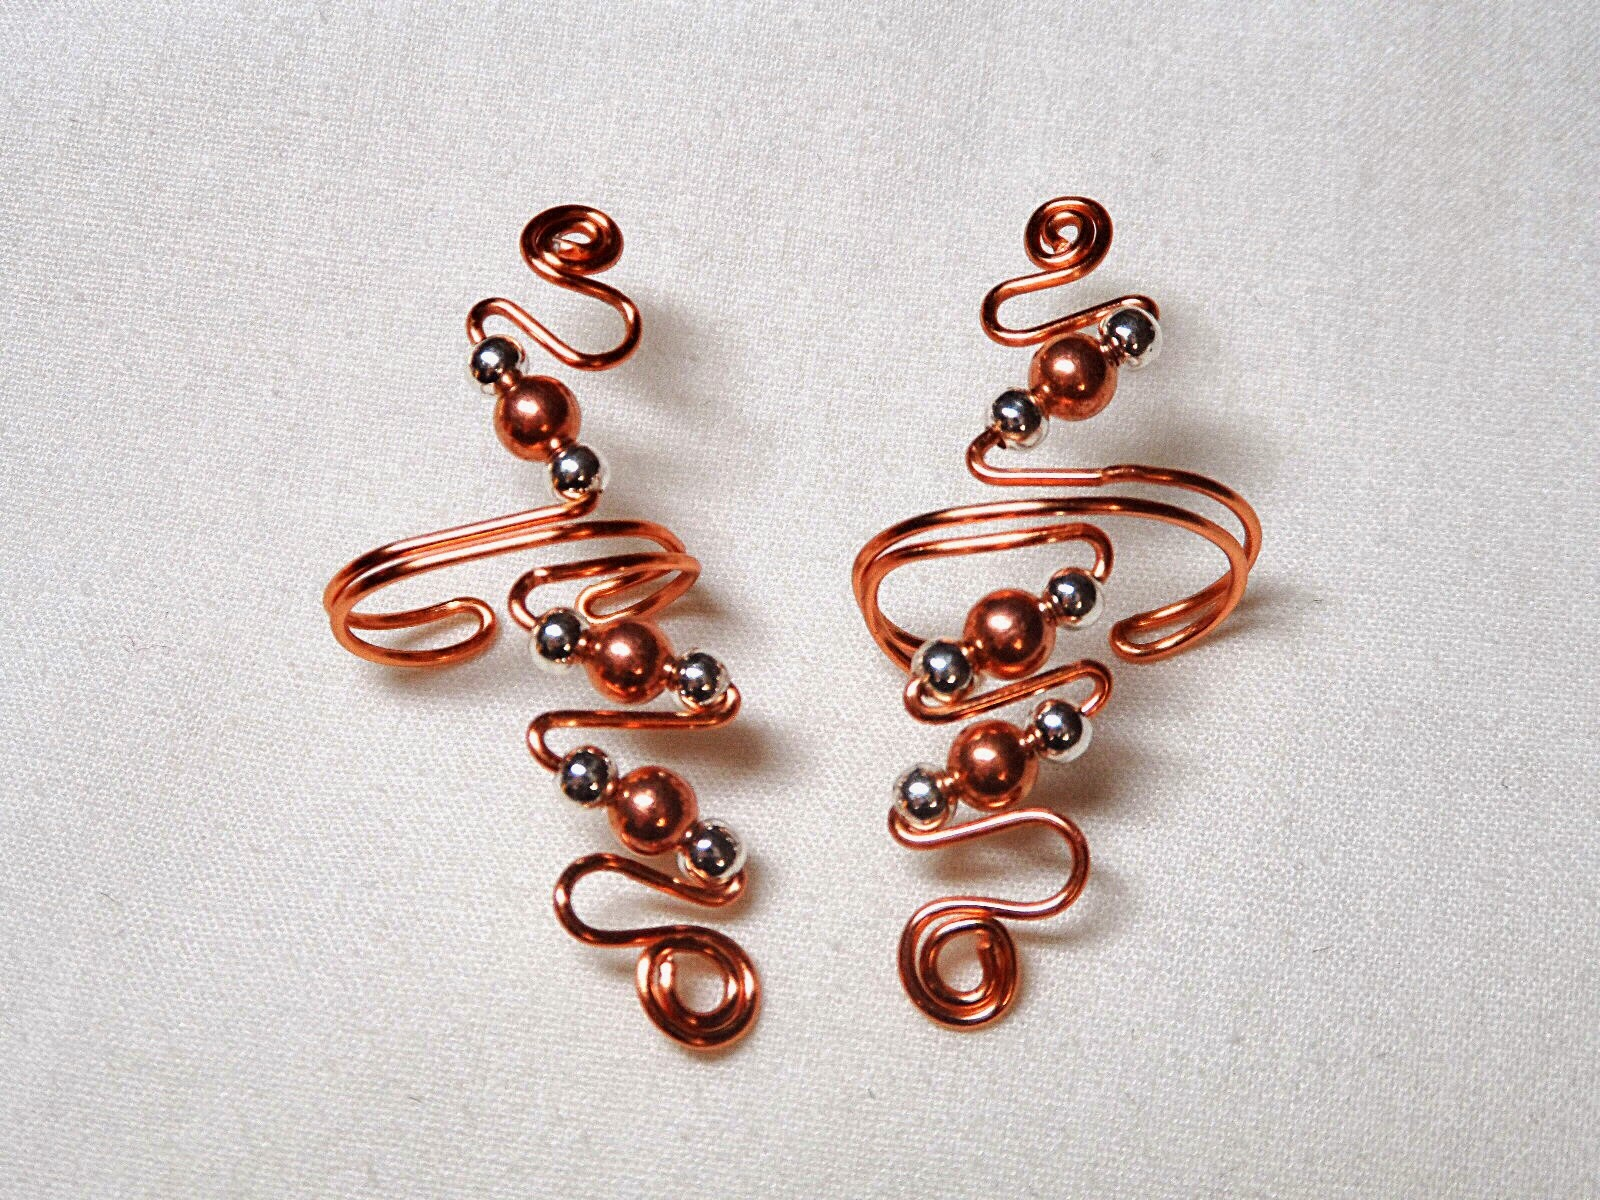 polished Copper and Silver Ear Cuffs